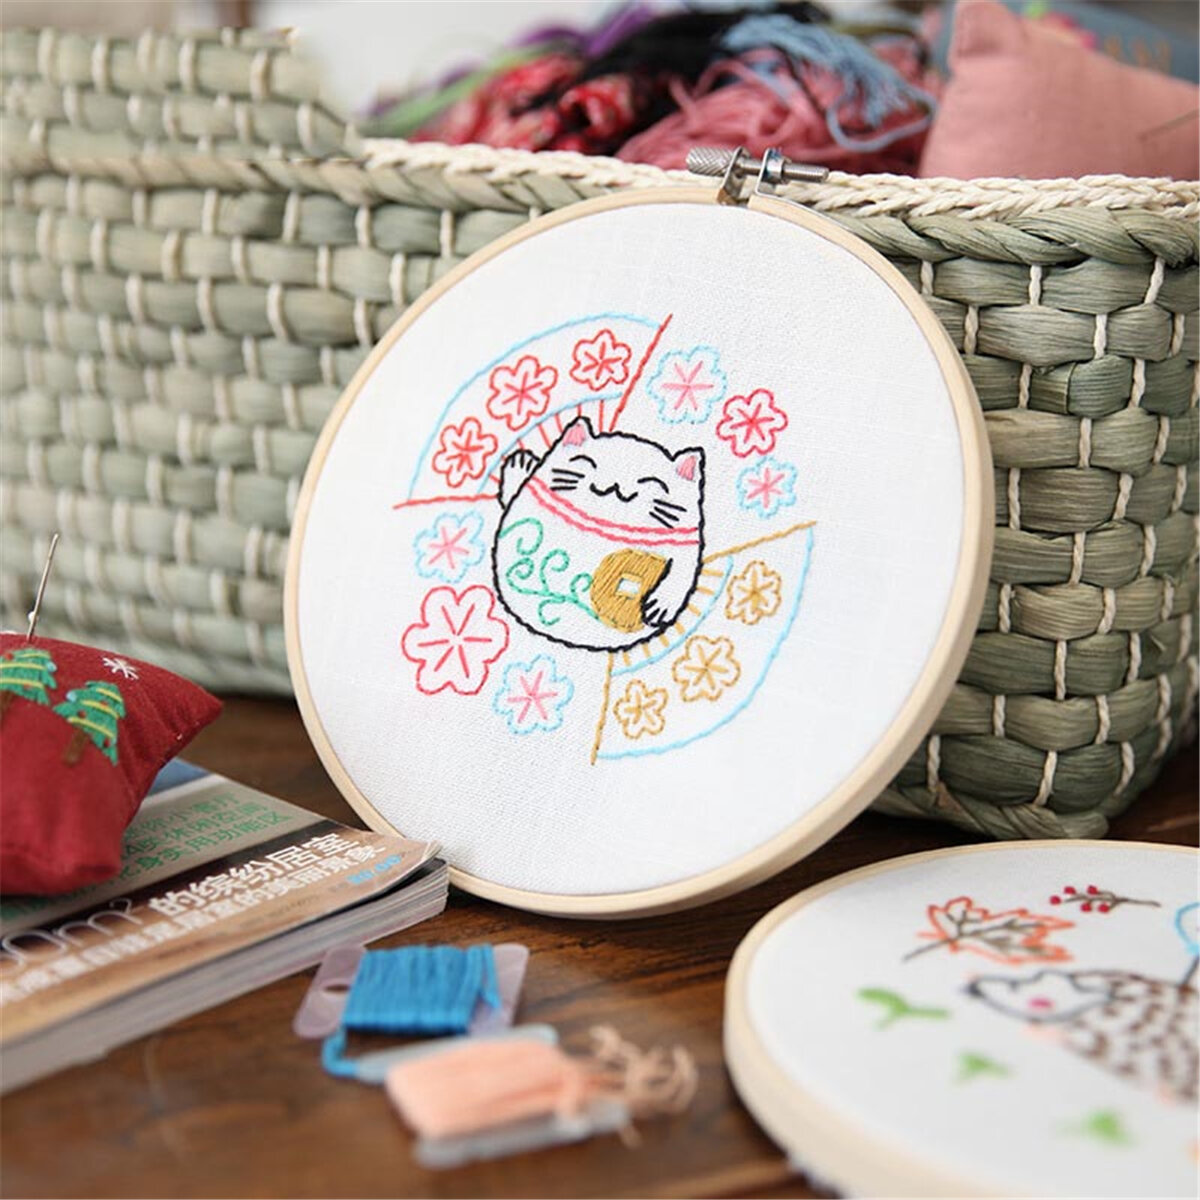 Cartoon DIY Ribbons Embroidery For Beginner Needlework Kits Cross Stitch Craft Sewing Supplies Home Wall Decor